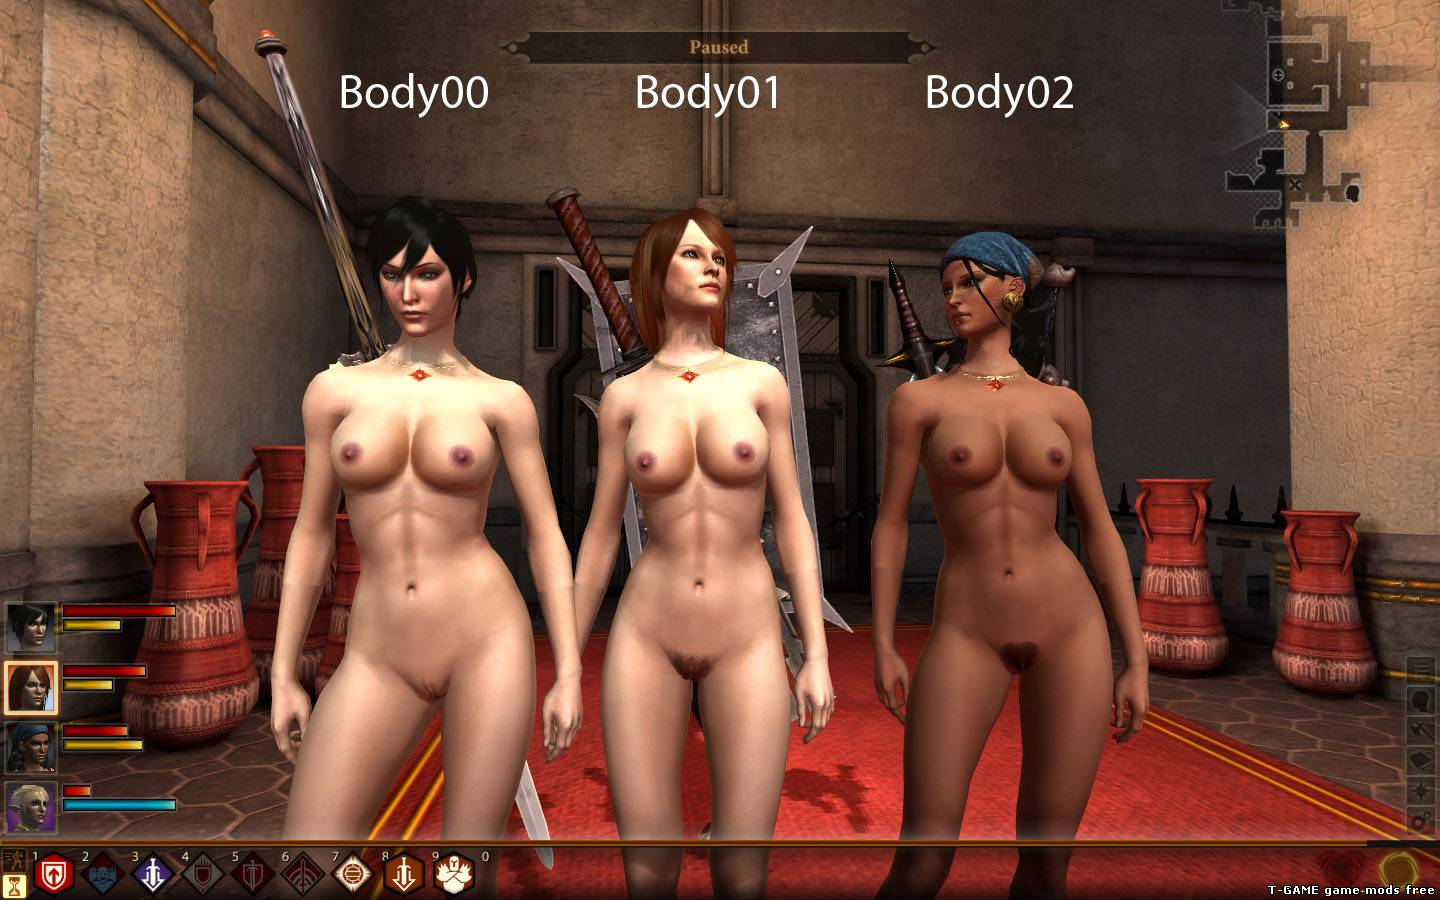 Dragon age hentai gary's mod erotic amature pornstar